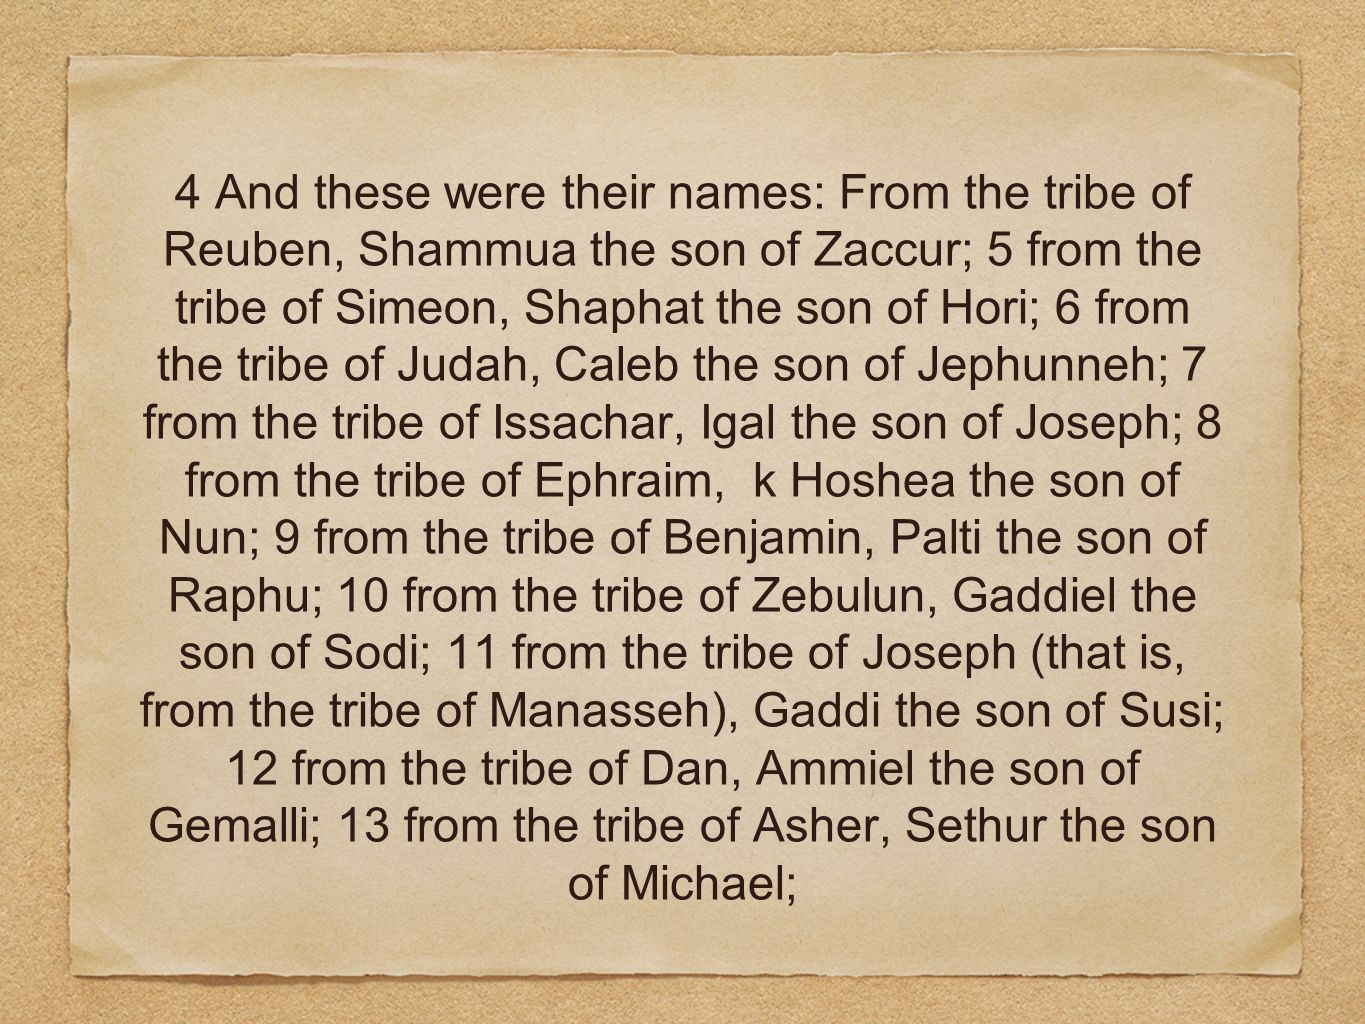 4 And these were their names: From the tribe of Reuben, Shammua the son of Zaccur; 5 from the tribe of Simeon, Shaphat the son of Hori; 6 from the tribe of Judah, Caleb the son of Jephunneh; 7 from the tribe of Issachar, Igal the son of Joseph; 8 from the tribe of Ephraim, k Hoshea the son of Nun; 9 from the tribe of Benjamin, Palti the son of Raphu; 10 from the tribe of Zebulun, Gaddiel the son of Sodi; 11 from the tribe of Joseph (that is, from the tribe of Manasseh), Gaddi the son of Susi; 12 from the tribe of Dan, Ammiel the son of Gemalli; 13 from the tribe of Asher, Sethur the son of Michael;